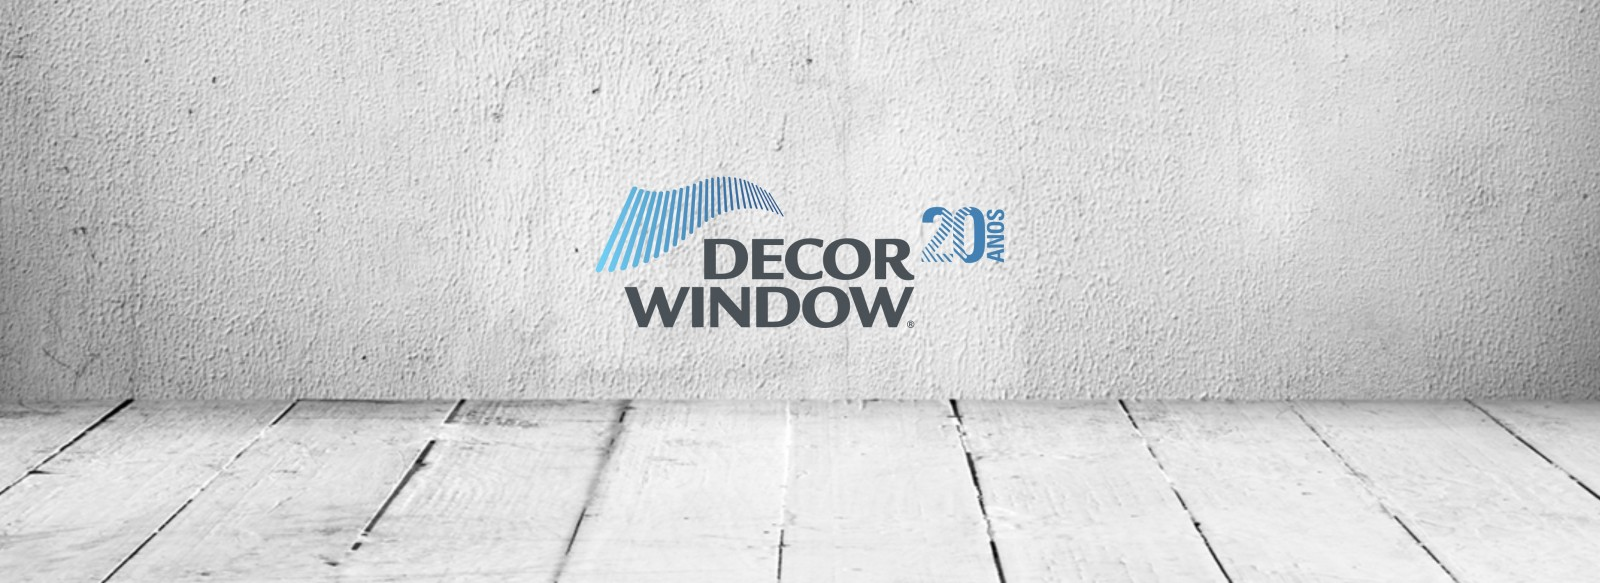 1996 > 2016_ VINTE ANOS DECOR WINDOW